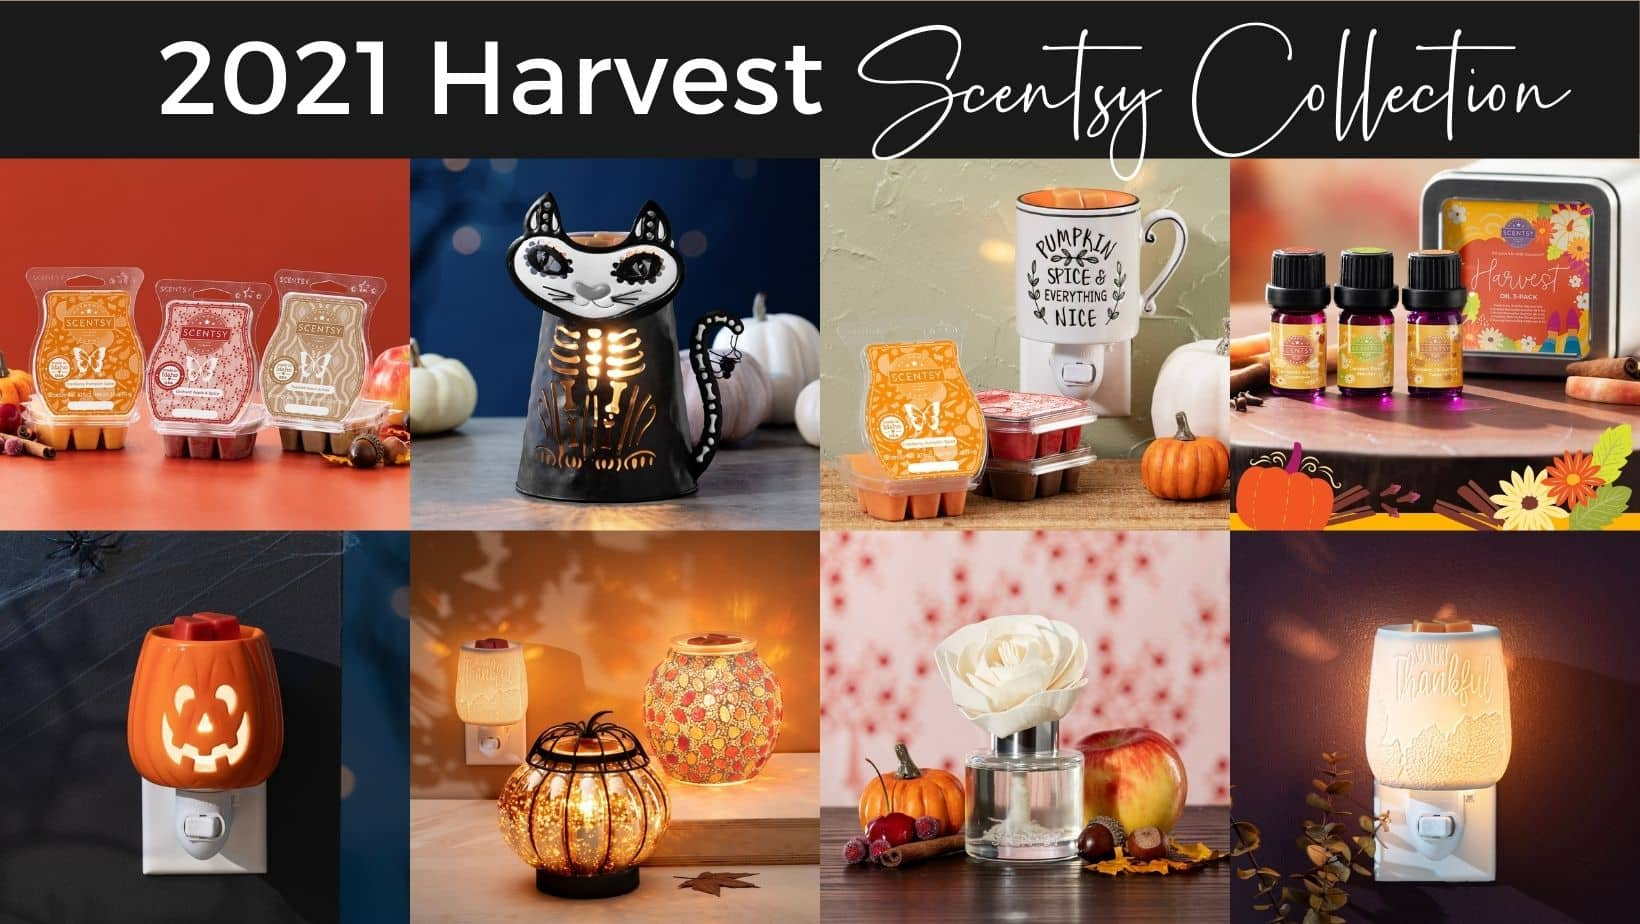 2021 Harvest Collection Shop Now 4